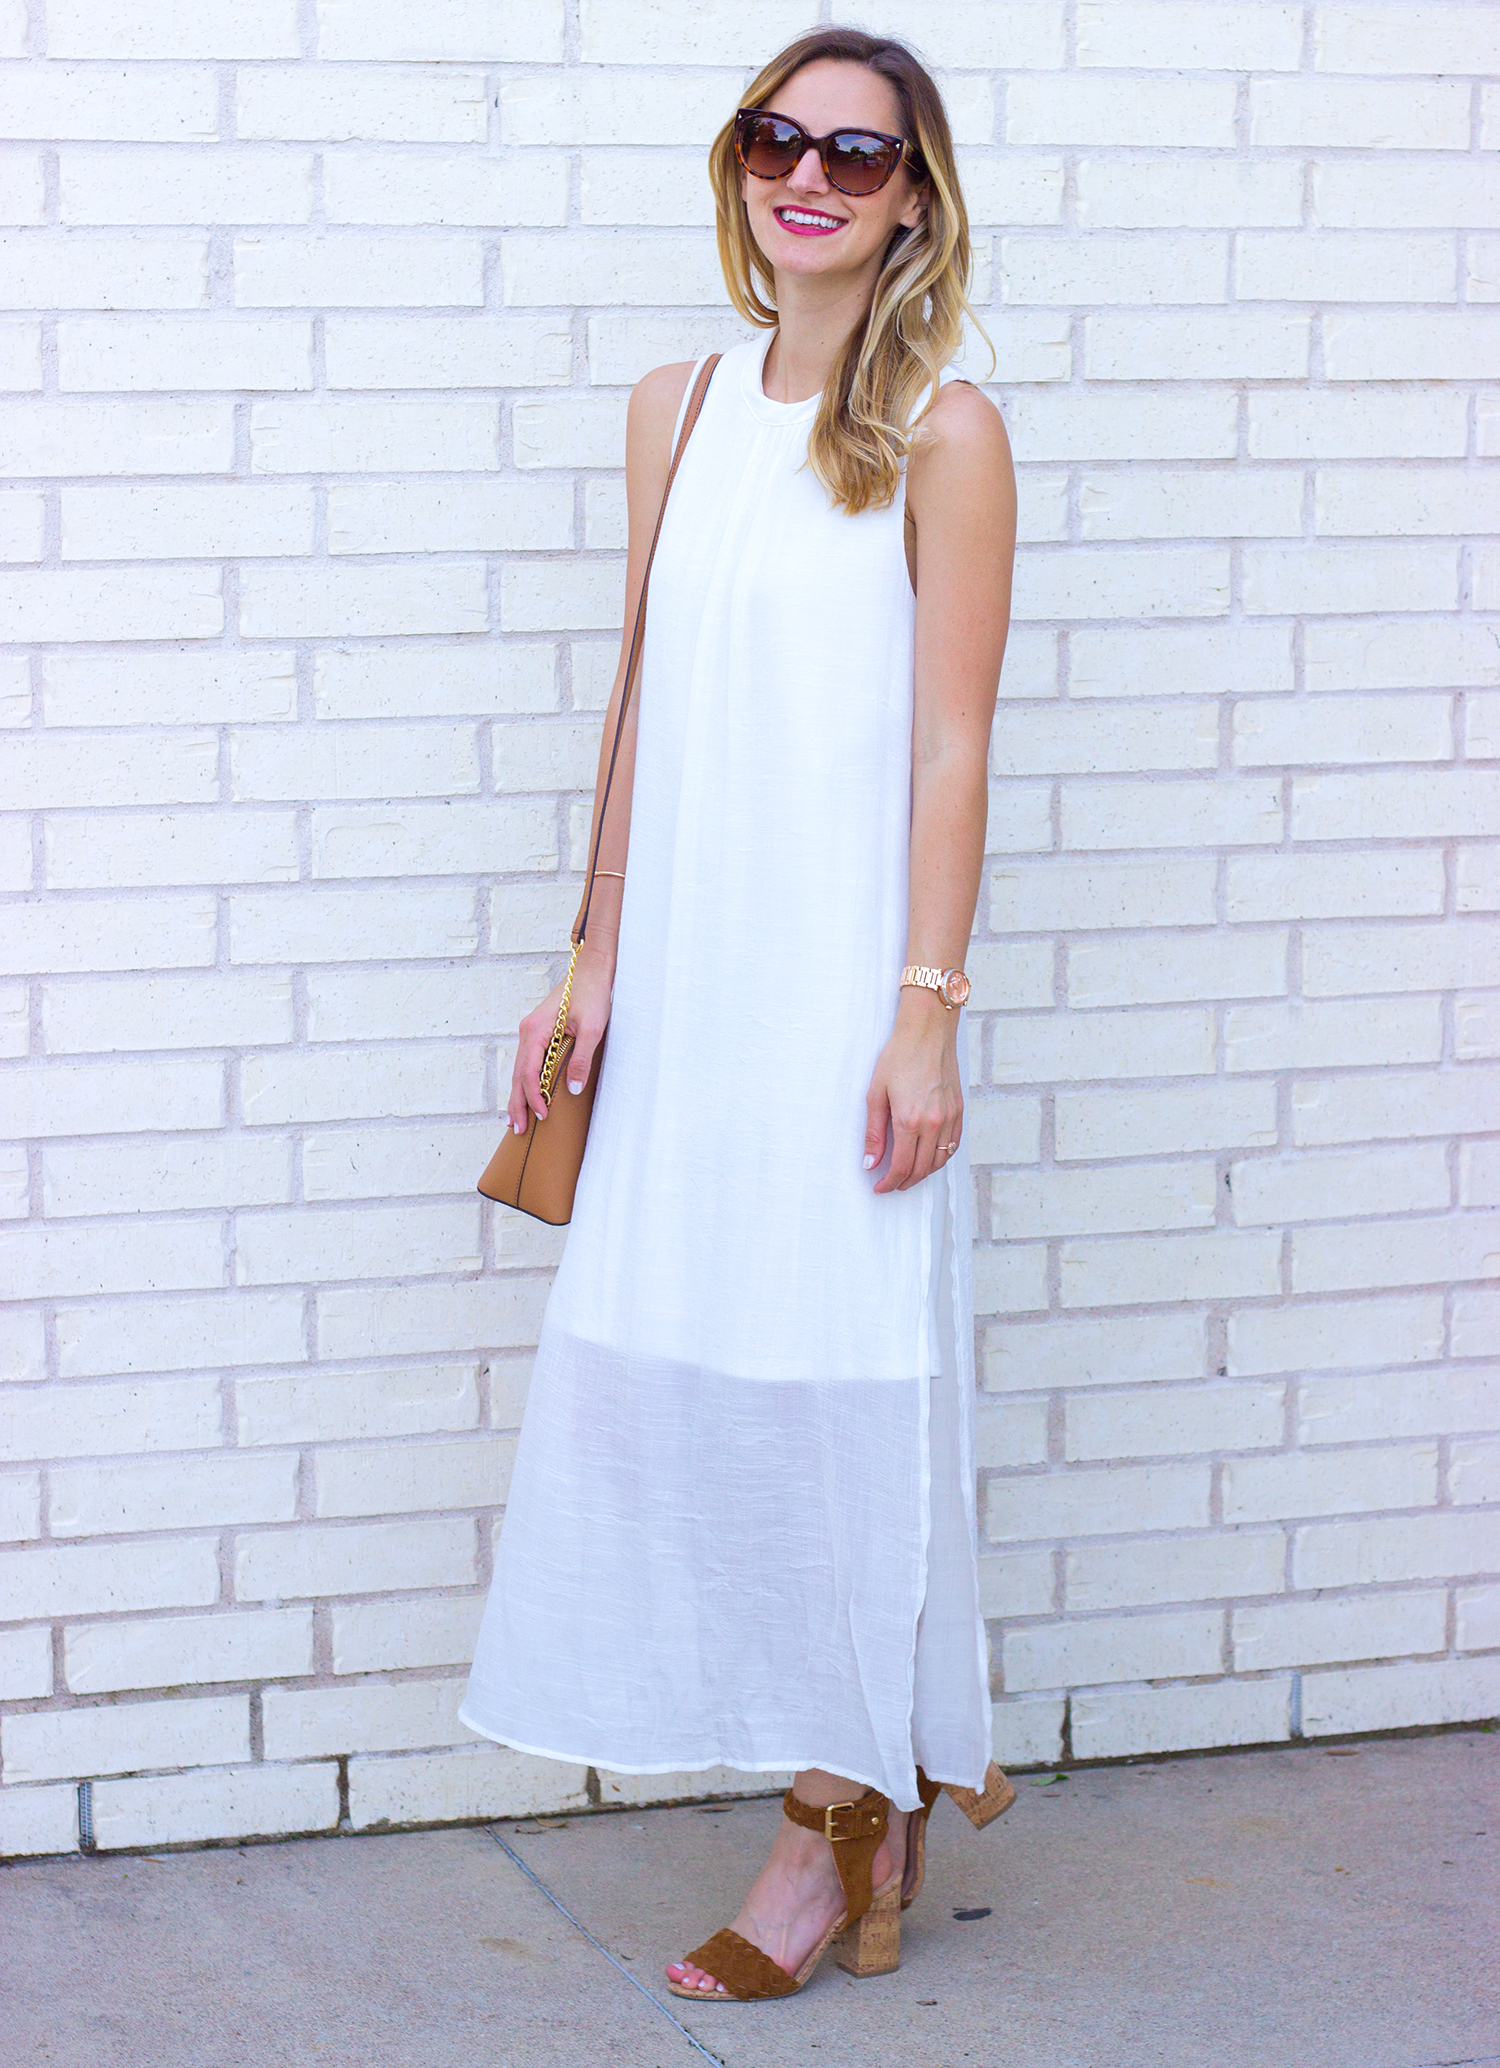 livvyland-blog-olivia-watson-white-sheer-midi-dress-painted-threads-braided-sandal-heels-austin-texas-fashion-blogger-rose-gold-kendra-scott-prada-cateye-sunglasses-spring-outfit-5